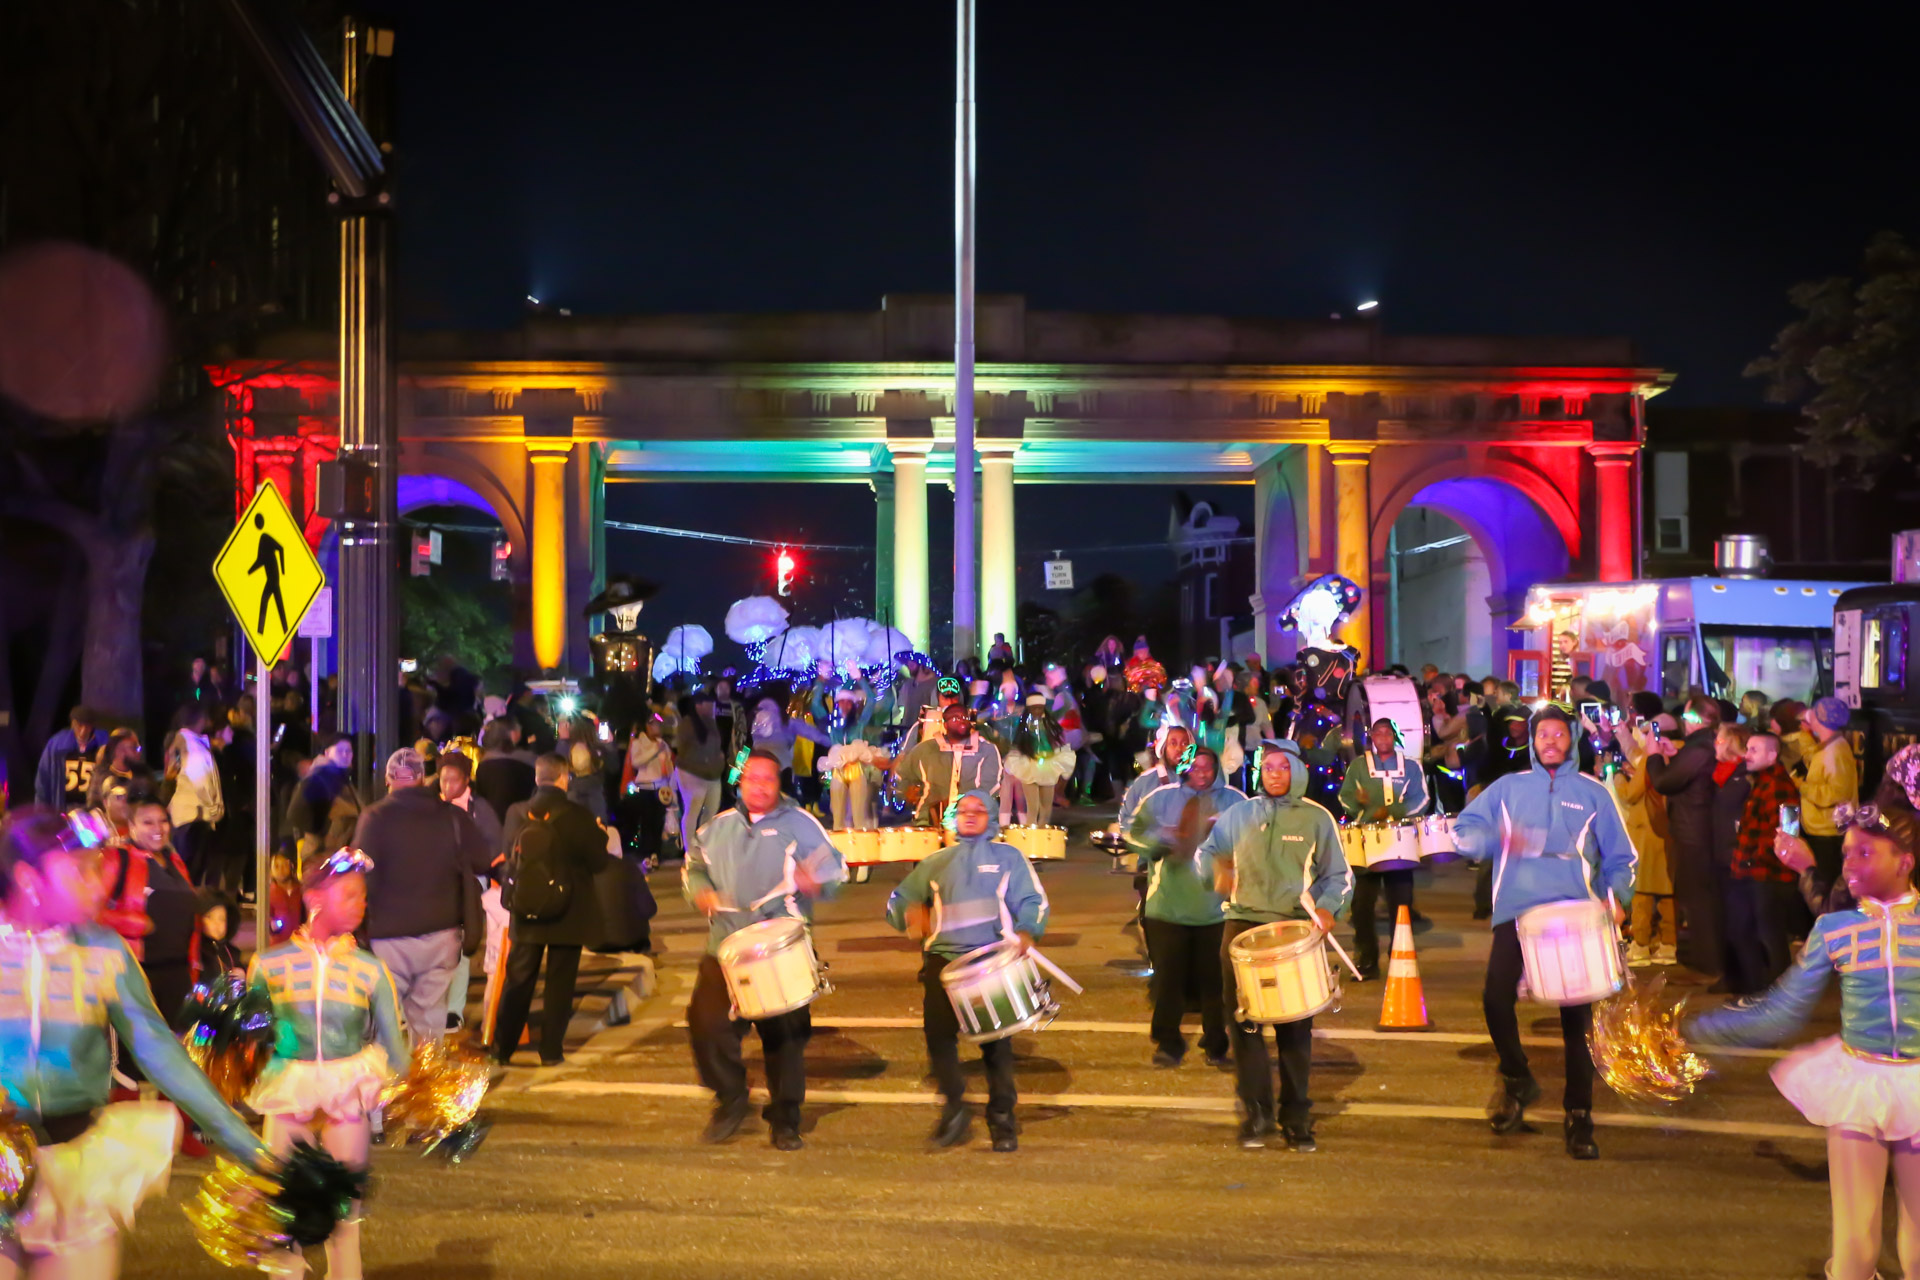 Arches & Access - Twilighters Marching Band performing on Druid Park Lake Drive